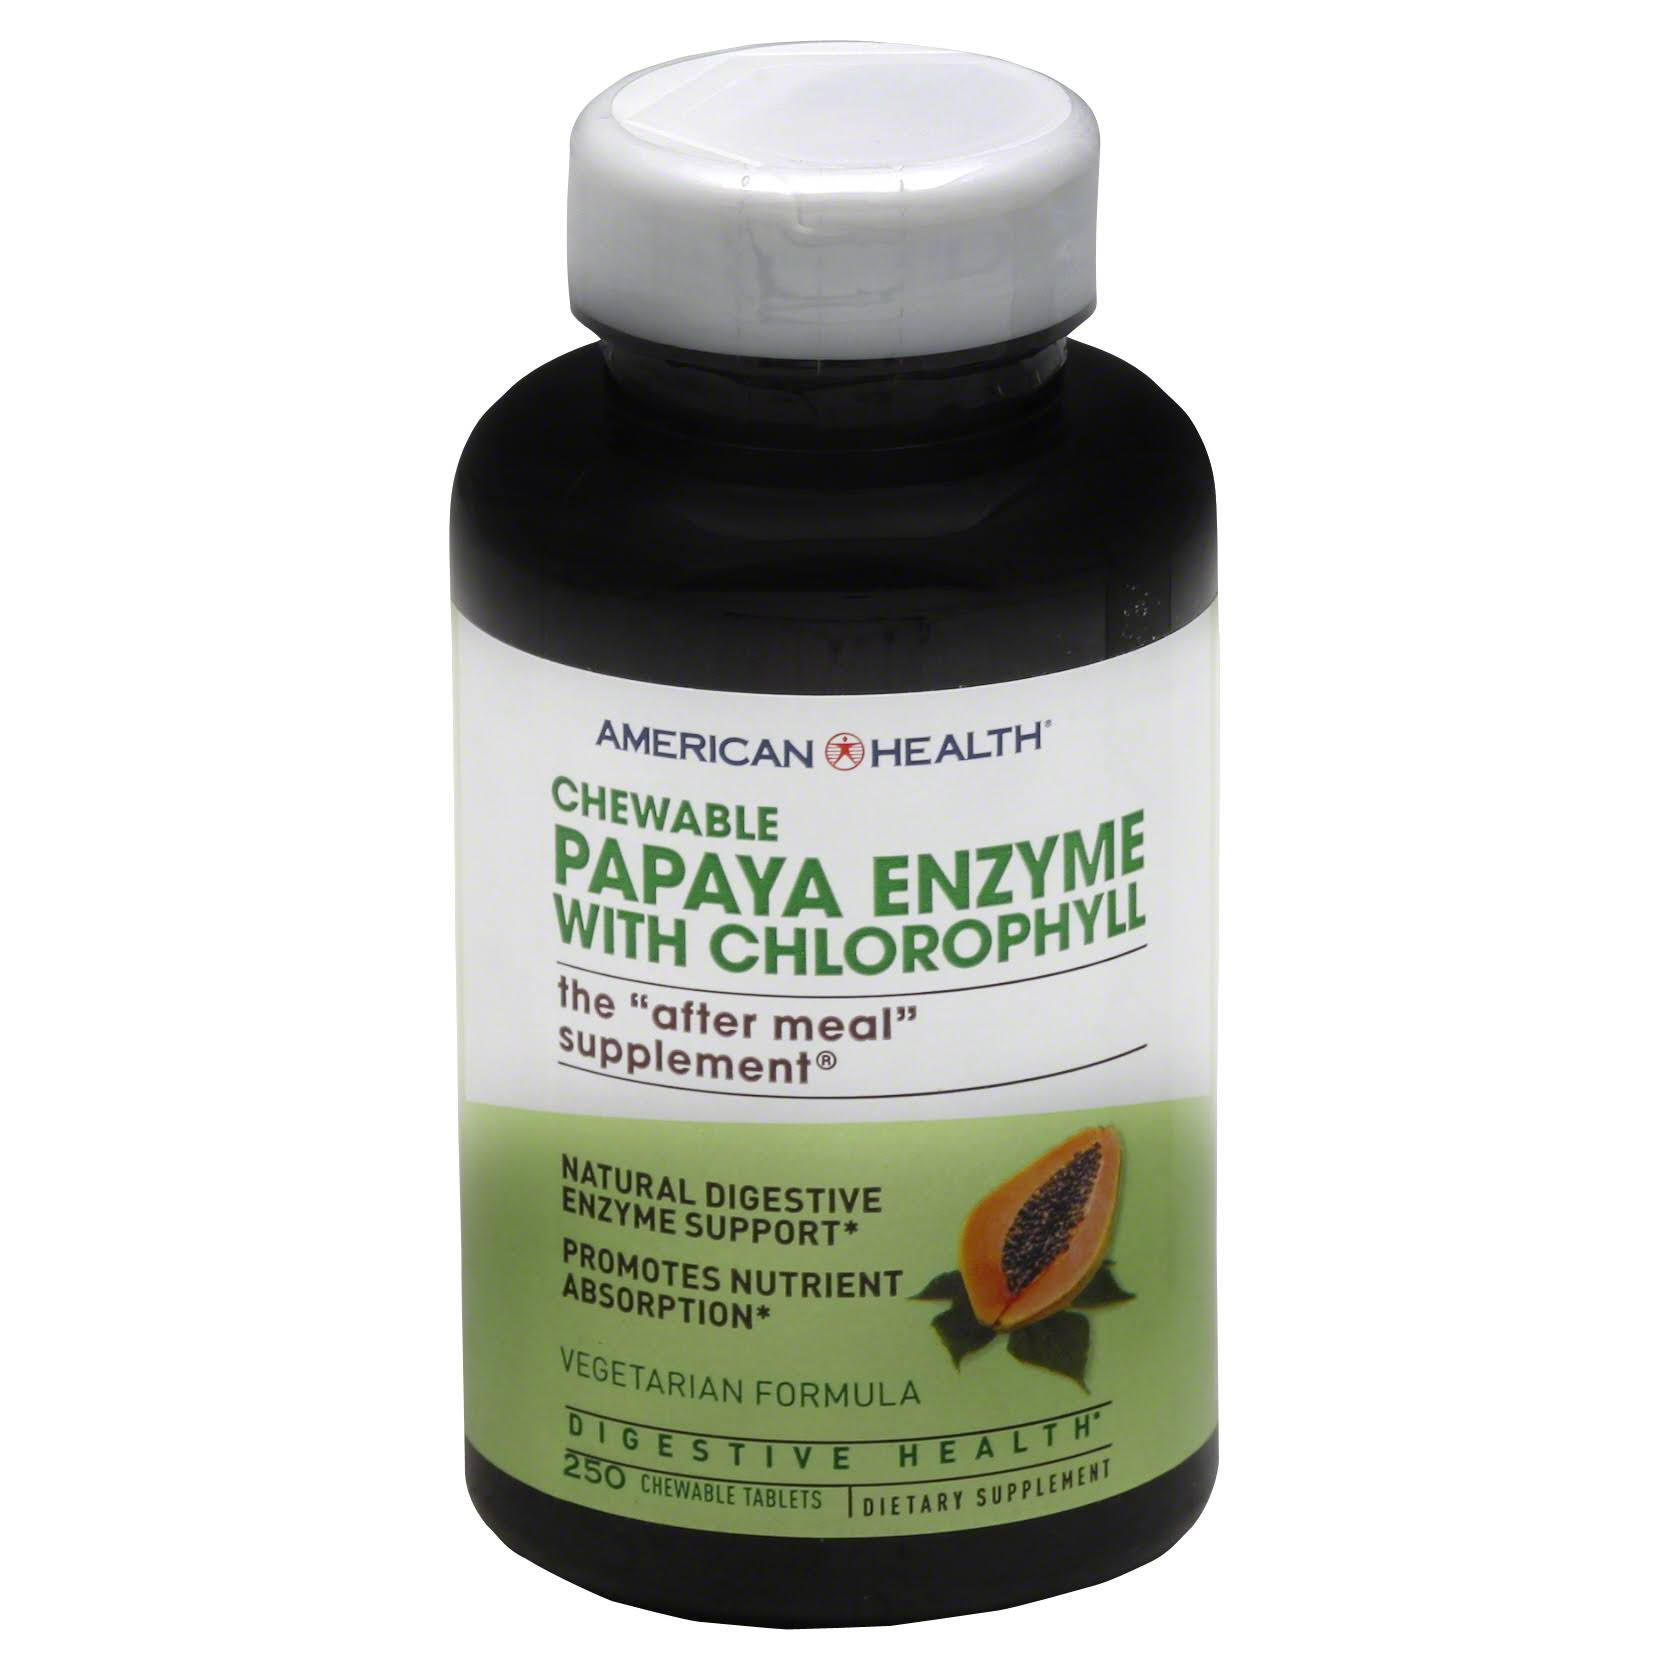 American Health Chewable Papaya Enzyme with Chlorophyll The After Meal Supplement - 250 Tablets